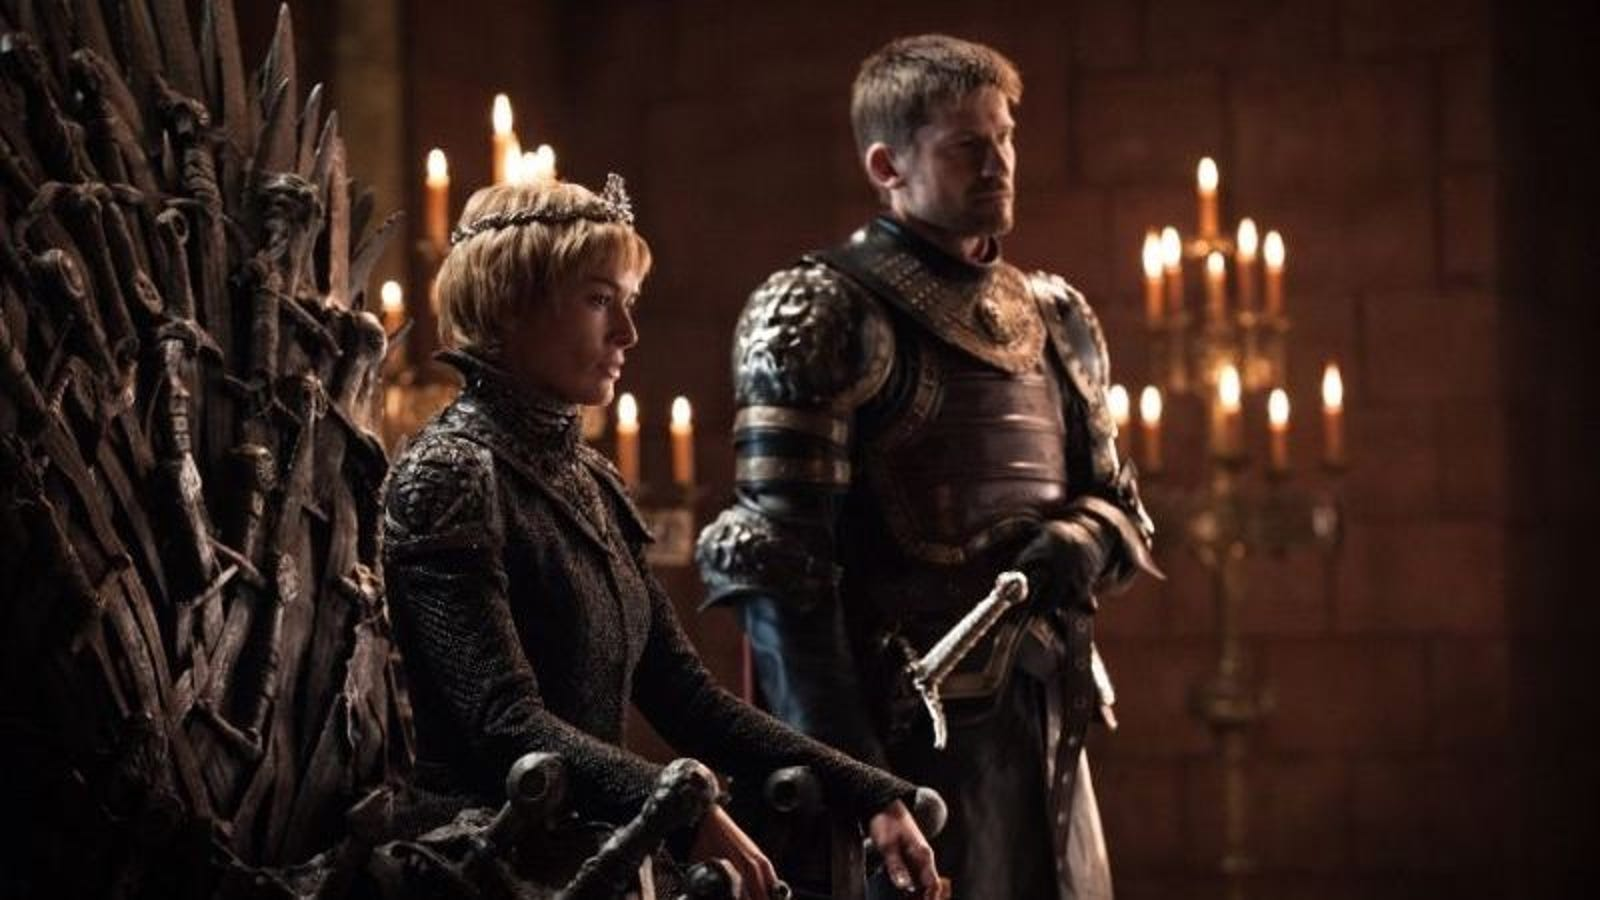 'Game of Thrones' Is Now Available Through Hulu Thanks to ...